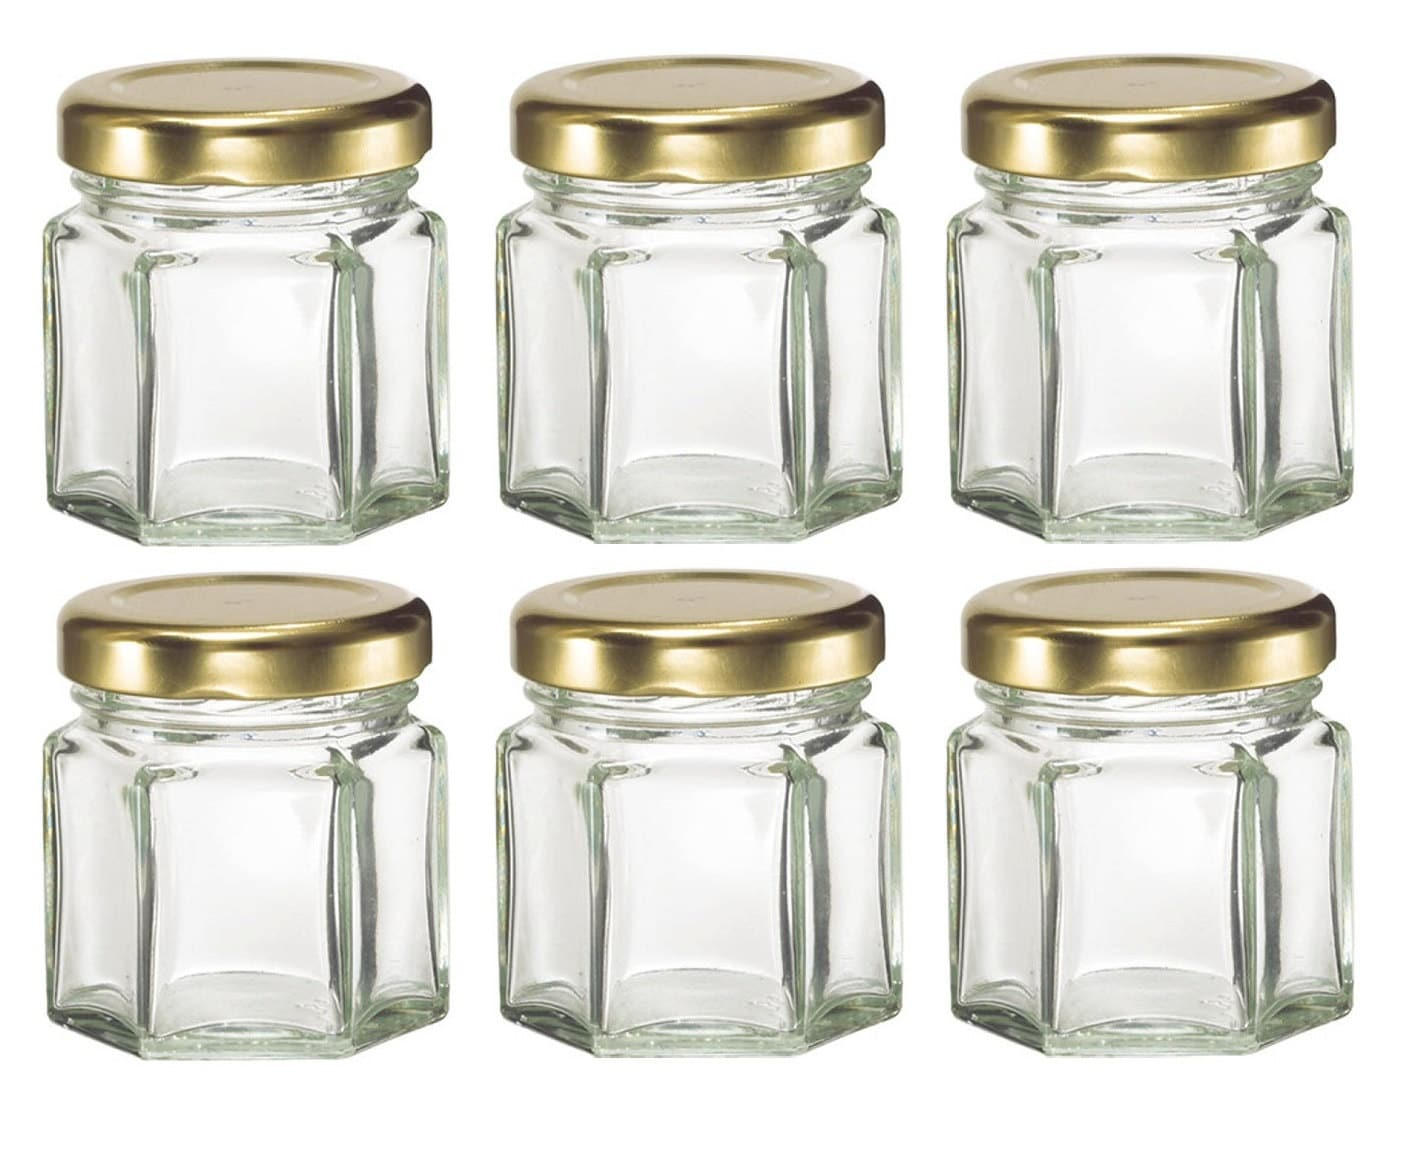 1.5 oz Mini Hexagon Glass Favor Jars for DIY Wedding jam